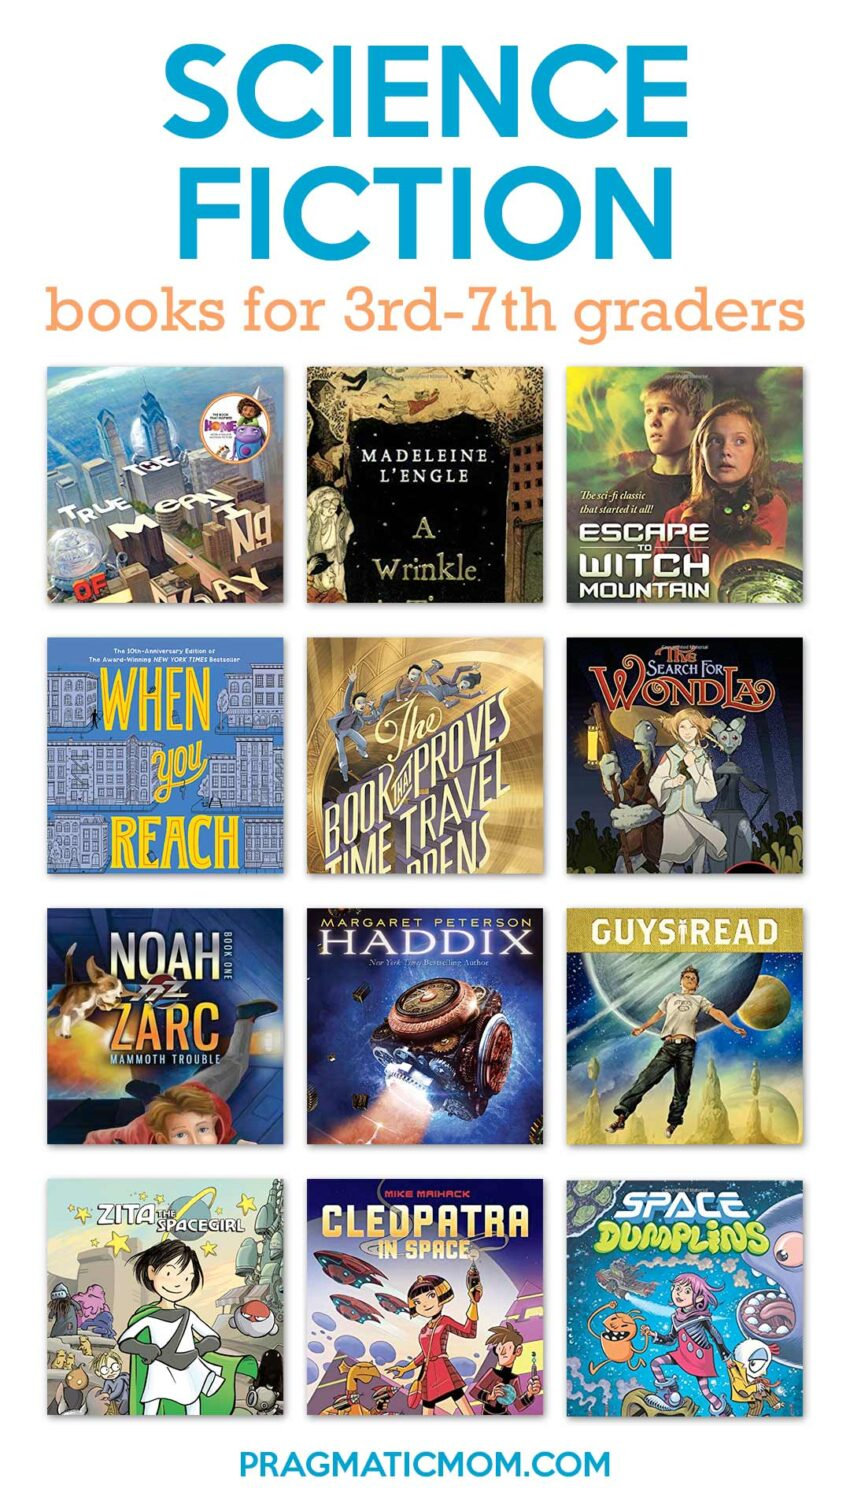 Science Fiction for 3rd-7th Grade